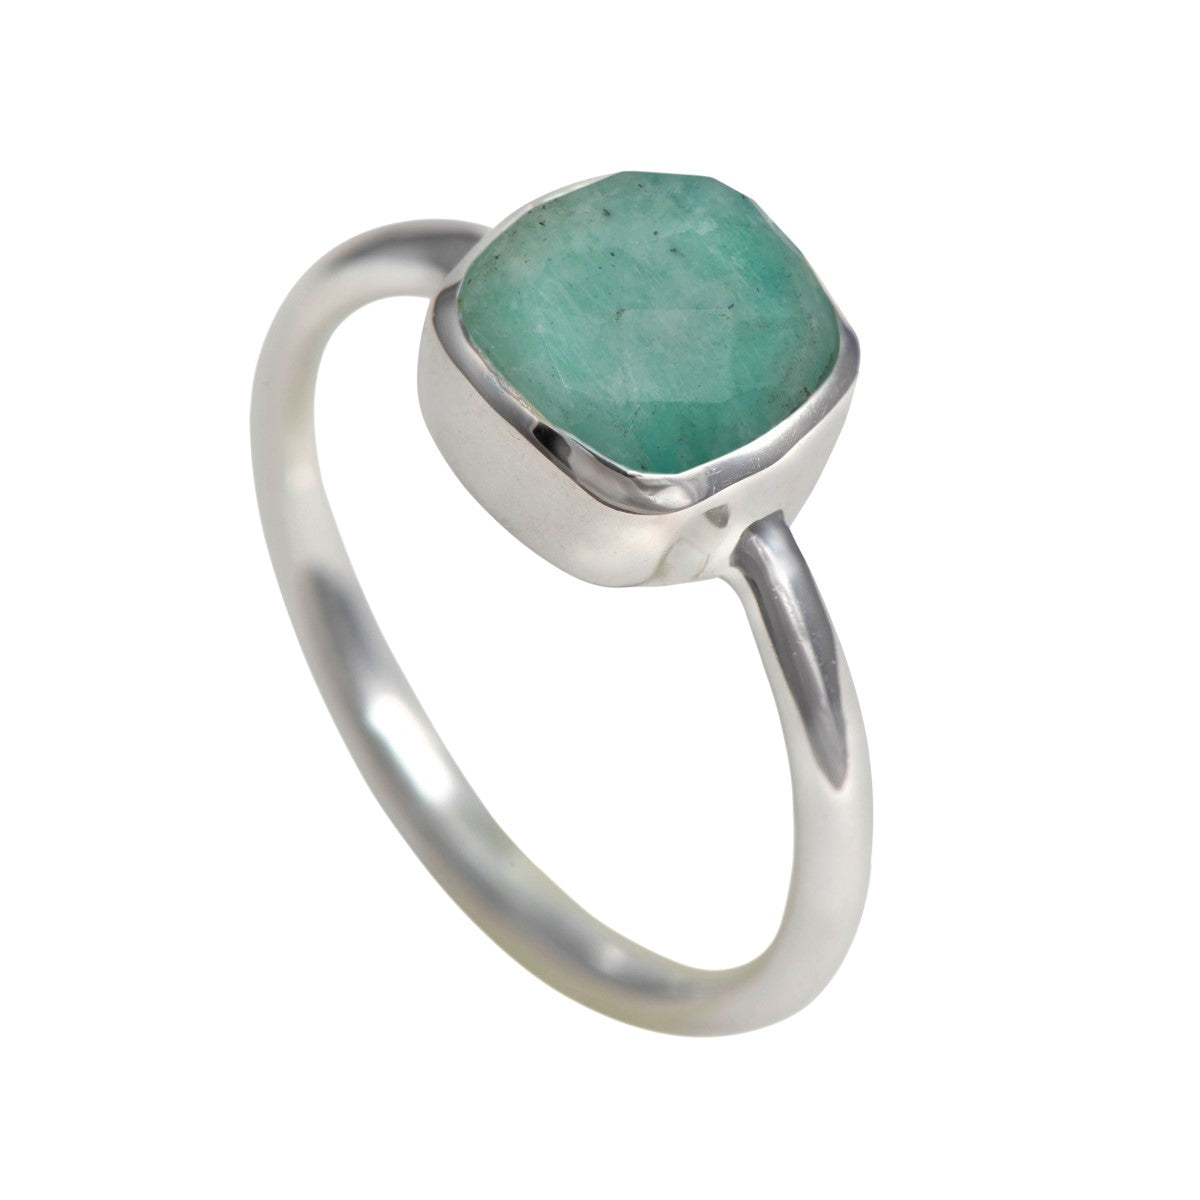 Faceted Square Cut Natural Gemstone Sterling Silver Solitaire Ring - Amazonite